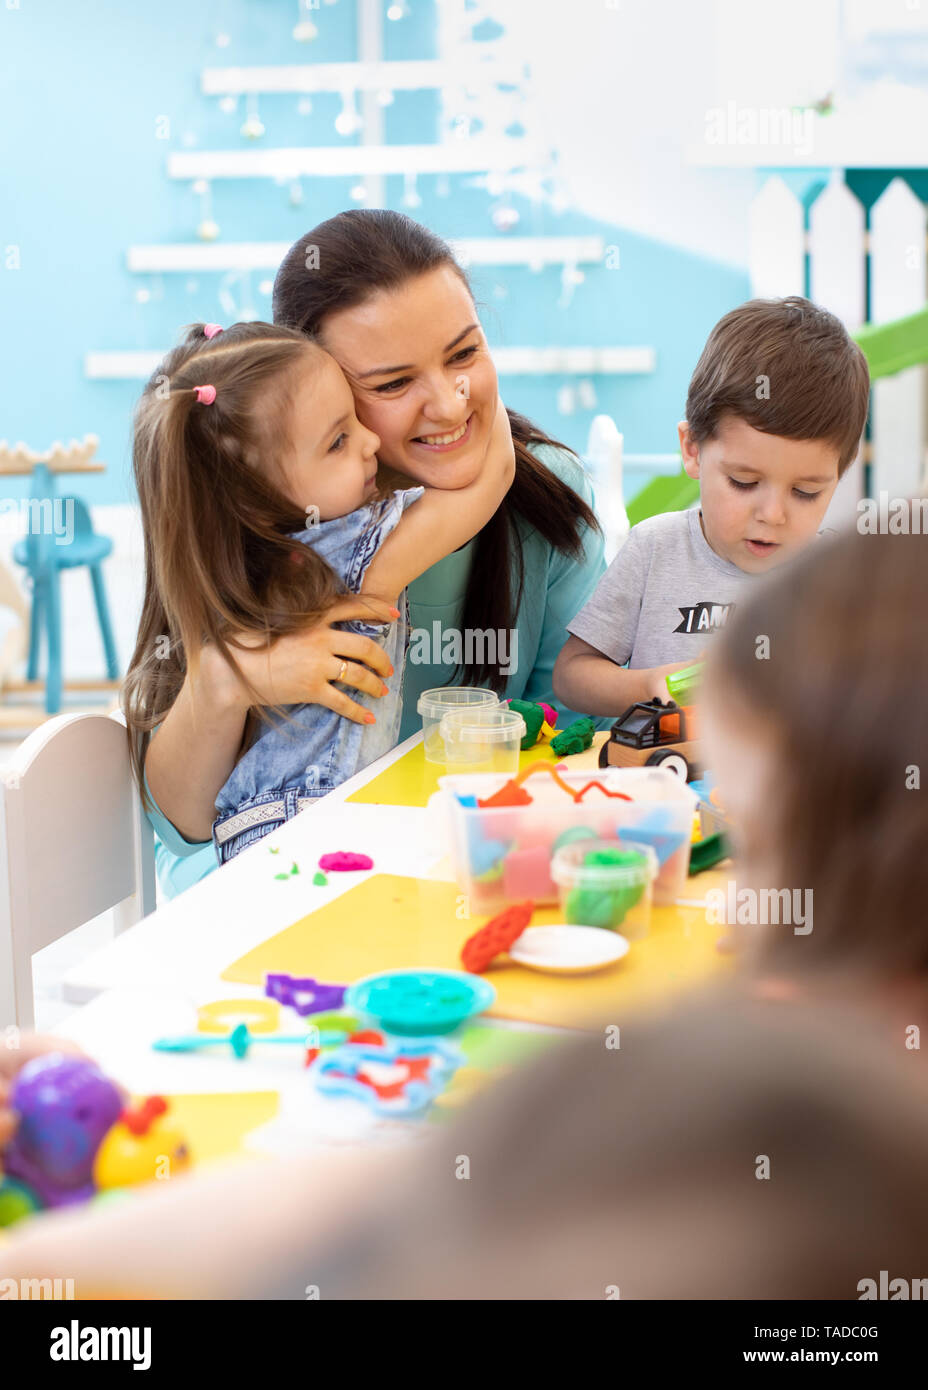 Teacher with group of kids working with plasticine at kindergarten or playschool - Stock Image